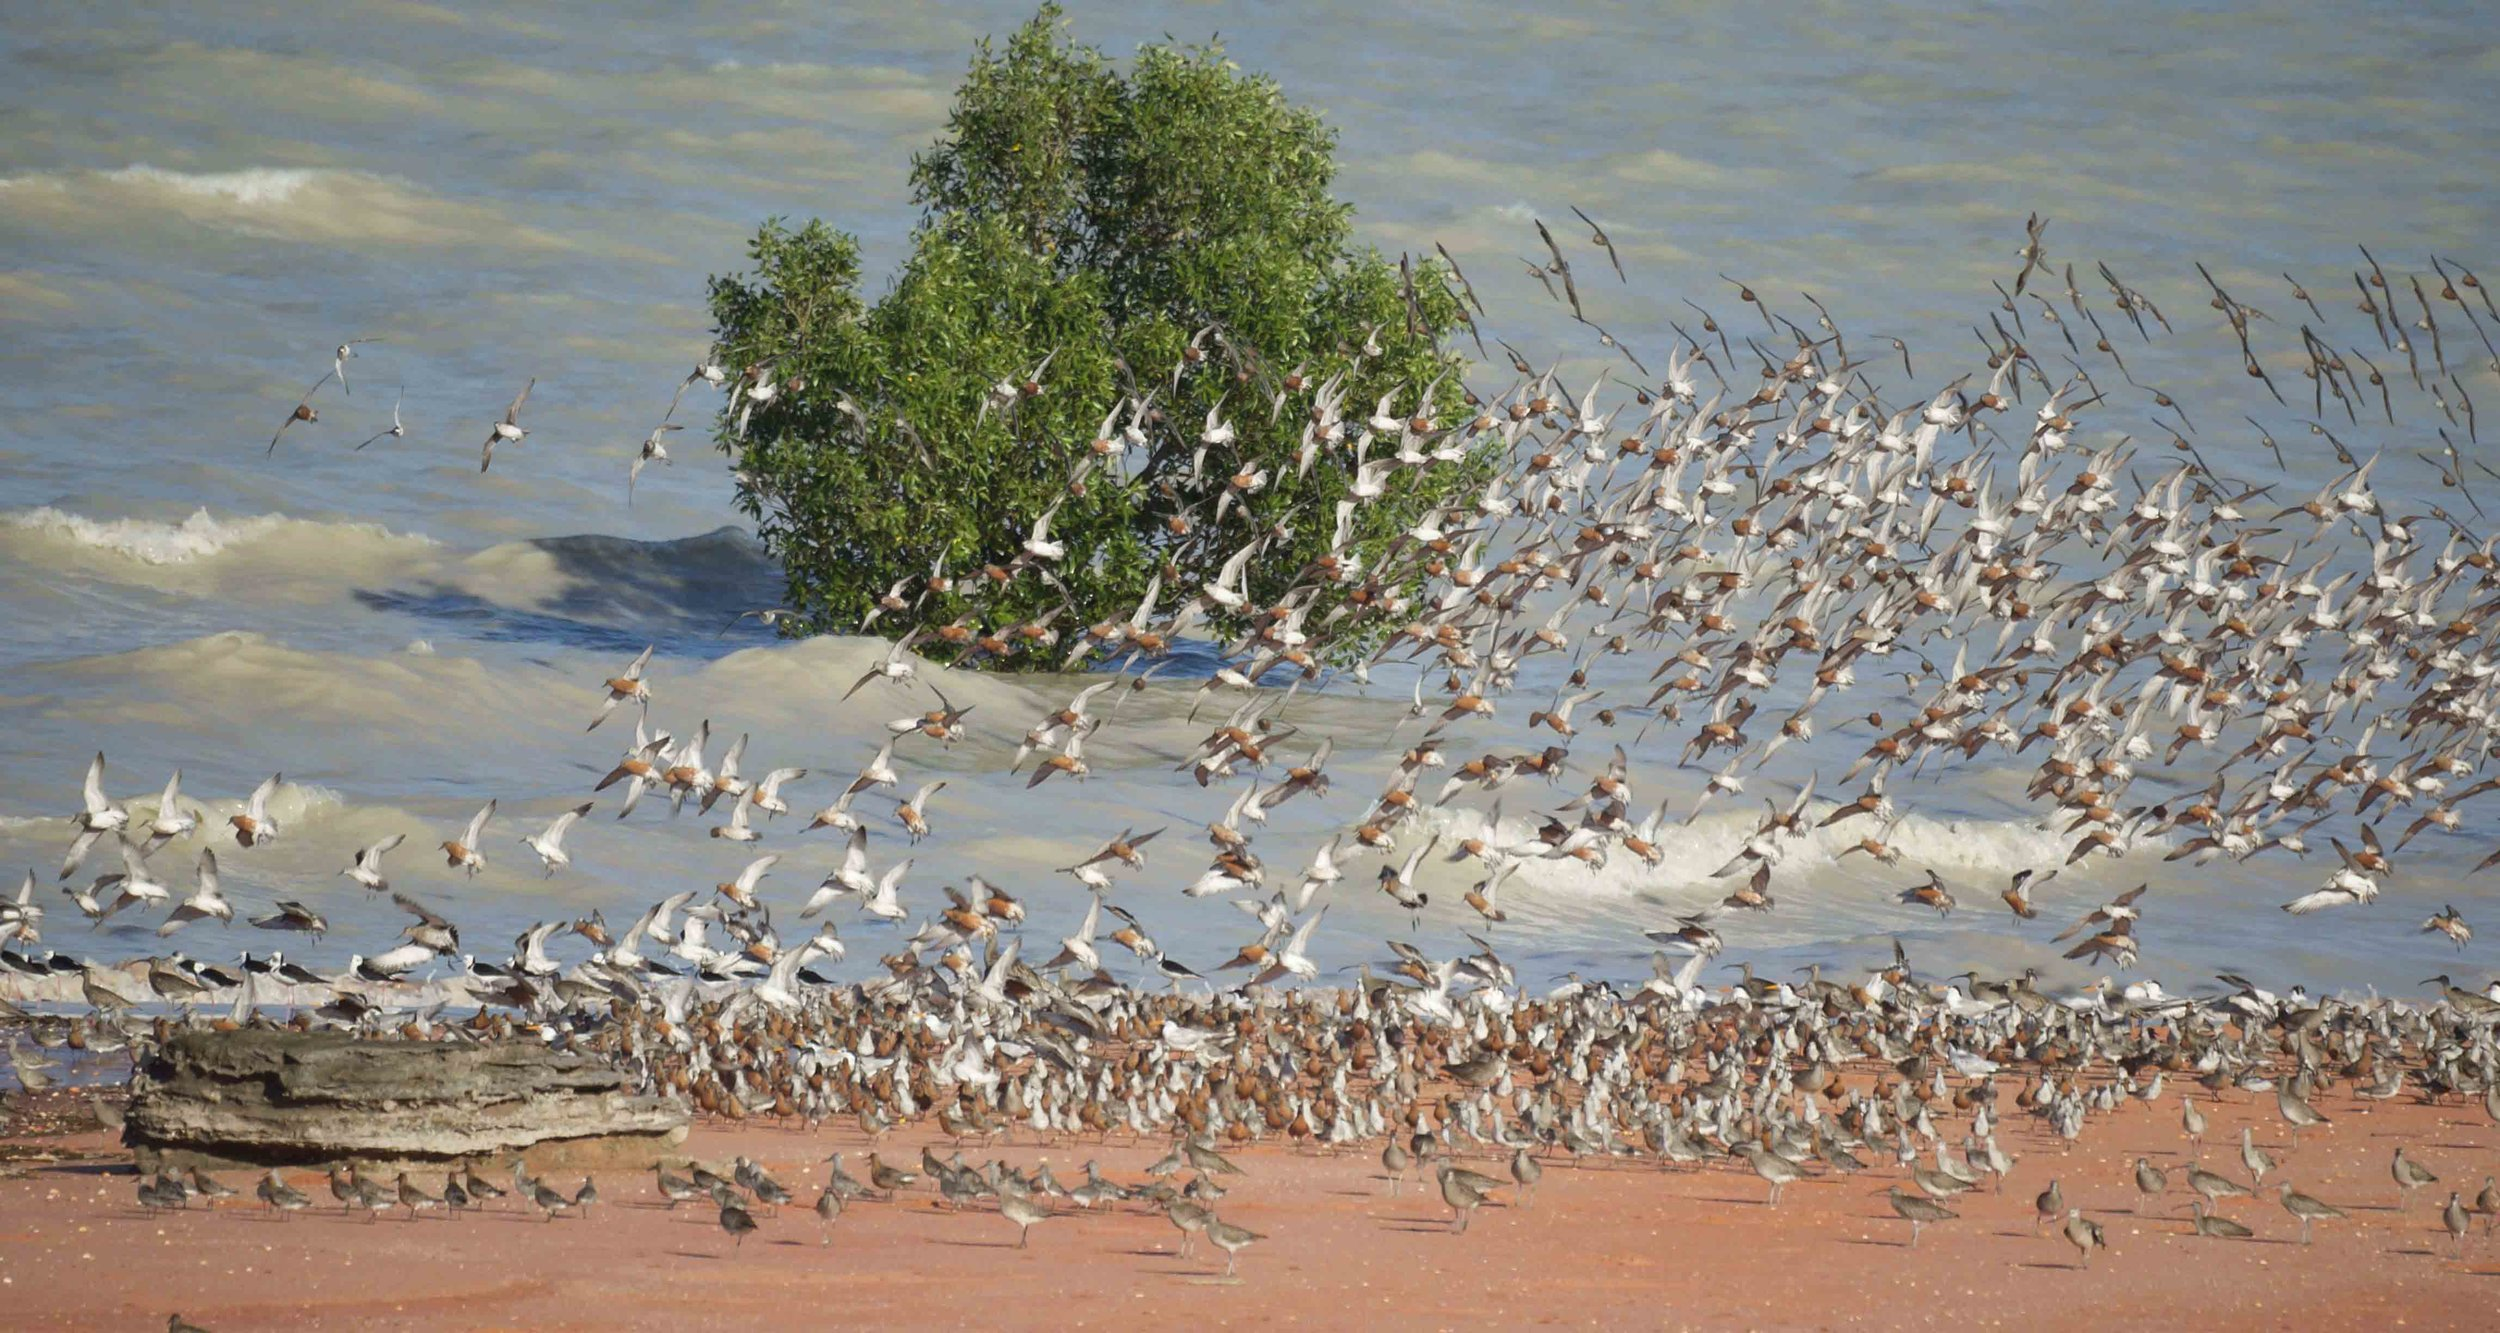 A flurry of Red Knots (among other shorebirds) are one of our last to migrate species, breeding in the far northern New Siberian Islands. Photo: Pauline Arnold